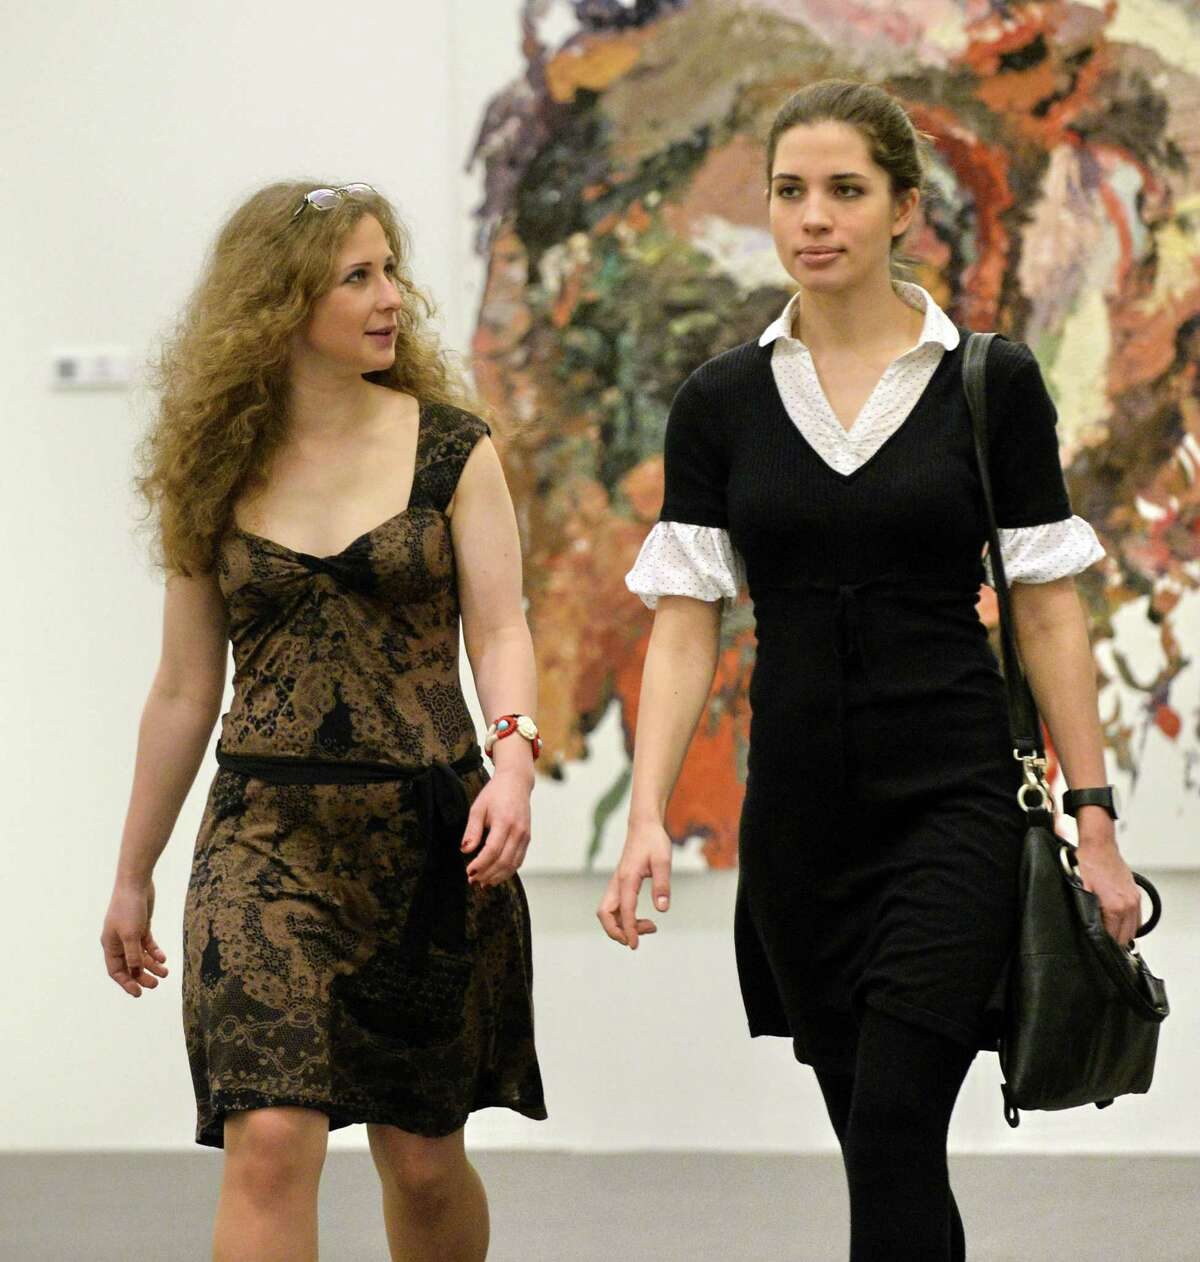 Members of the Russian punk rock band Pussy Riot Nadezhda Tolokonnikova (R) and Maria Alyokhina (L) arrive at a preview of the nominees for the inaugural Prudential Eye Awards in Singapore on January 17, 2014. The two members of Russian punk band Pussy Riot made their first international appearance since their release from prison last month, ahead of the awards ceremony for emerging Asian artists for which their anti-Putin video is shortlisted. The video didn't win.